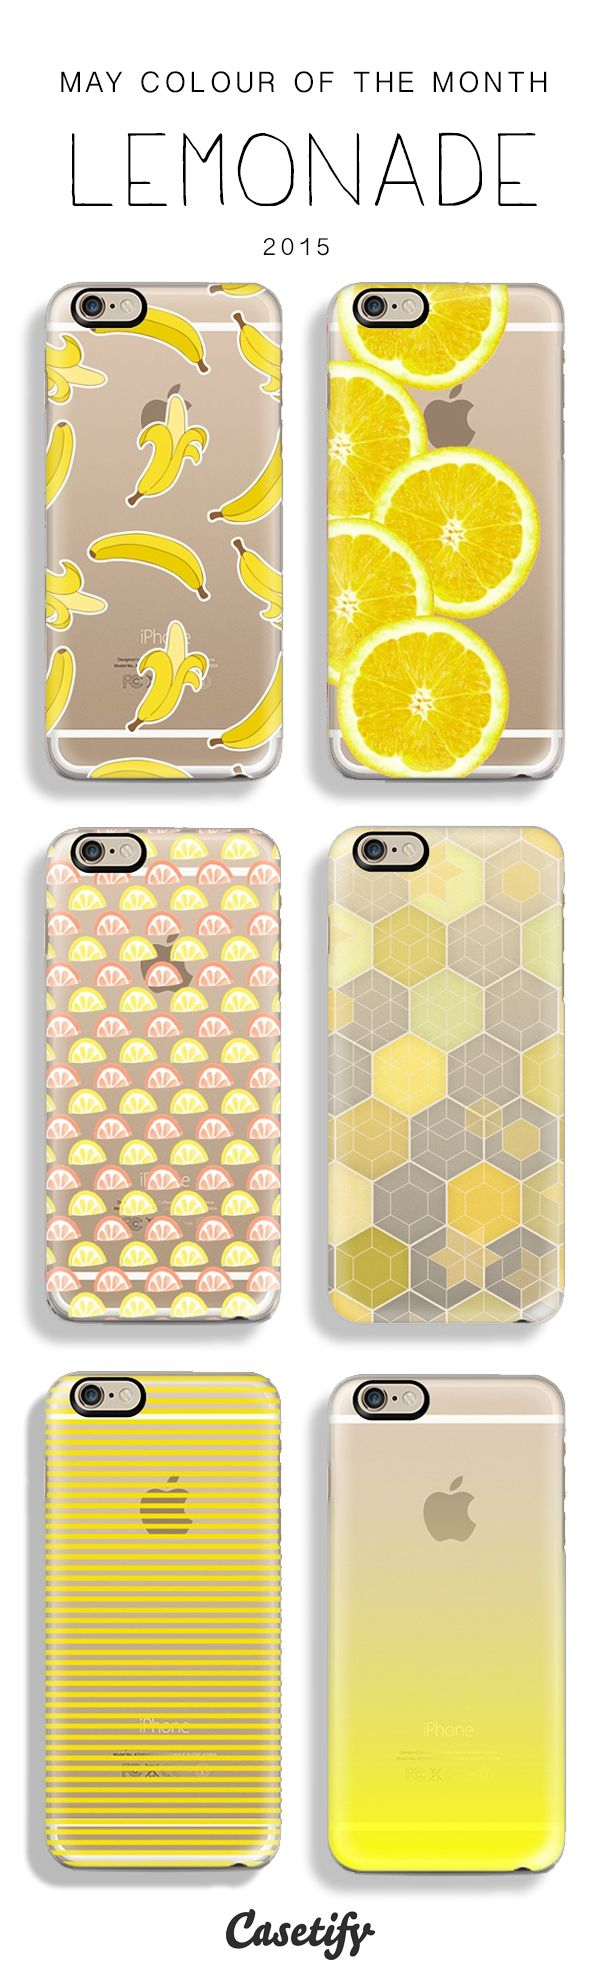 May Colour of the Month: Lemonade! Pucker up for summer in trend-ready yellow! Shop this collection: http://goo.gl/GjIpiU